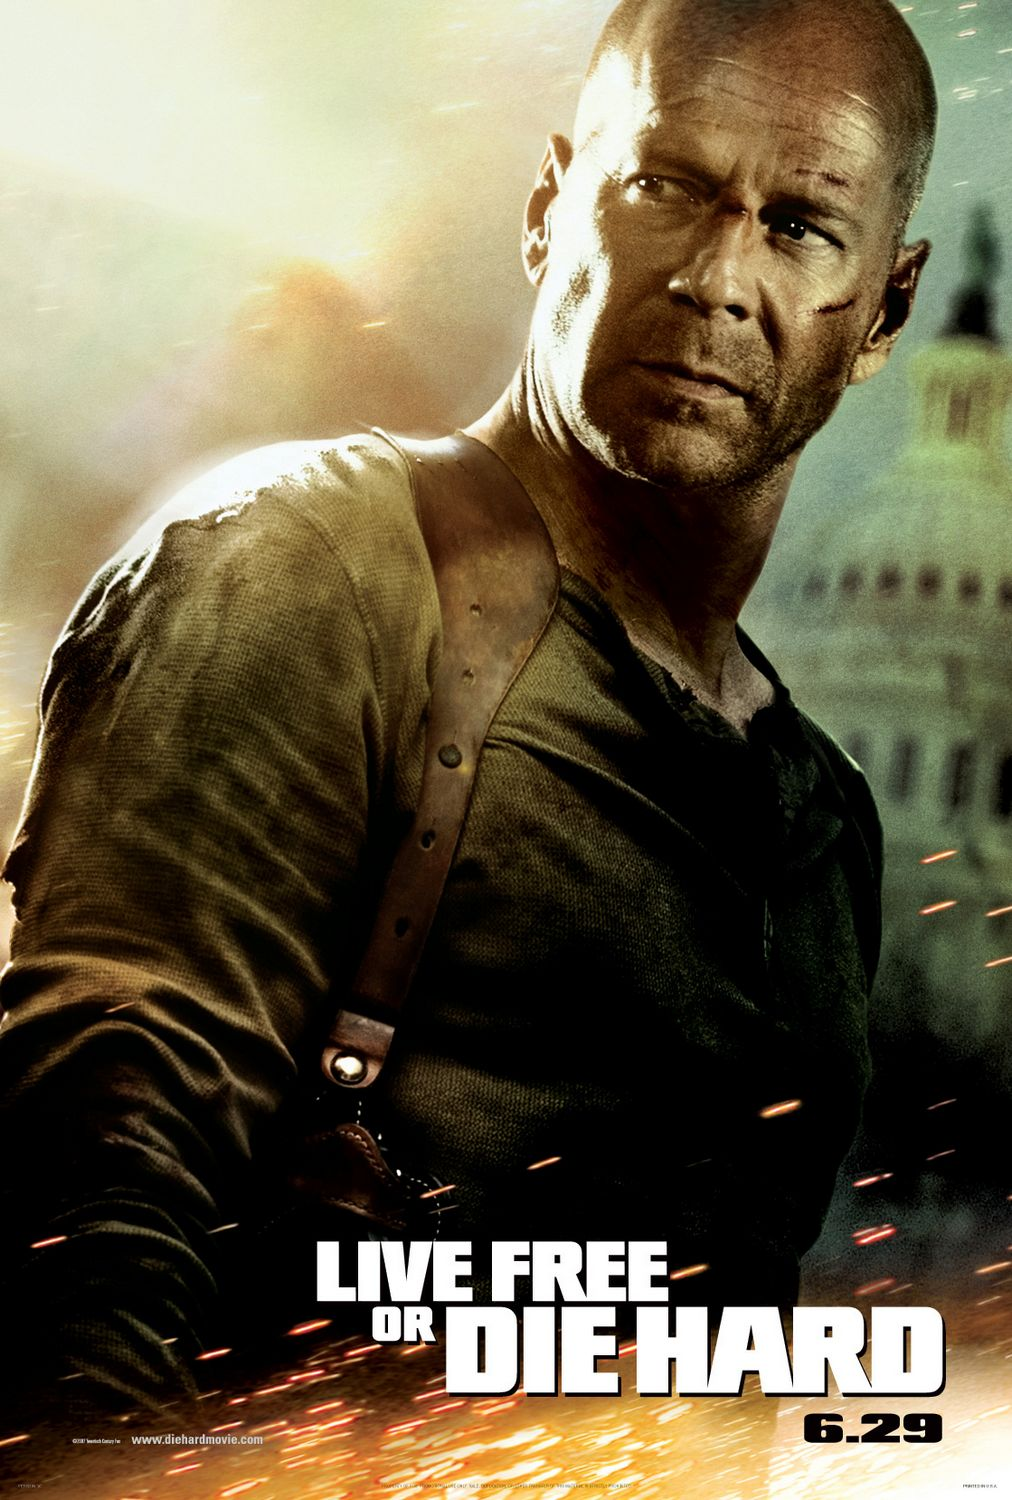 Movie Poster for Live Free or Die Hard